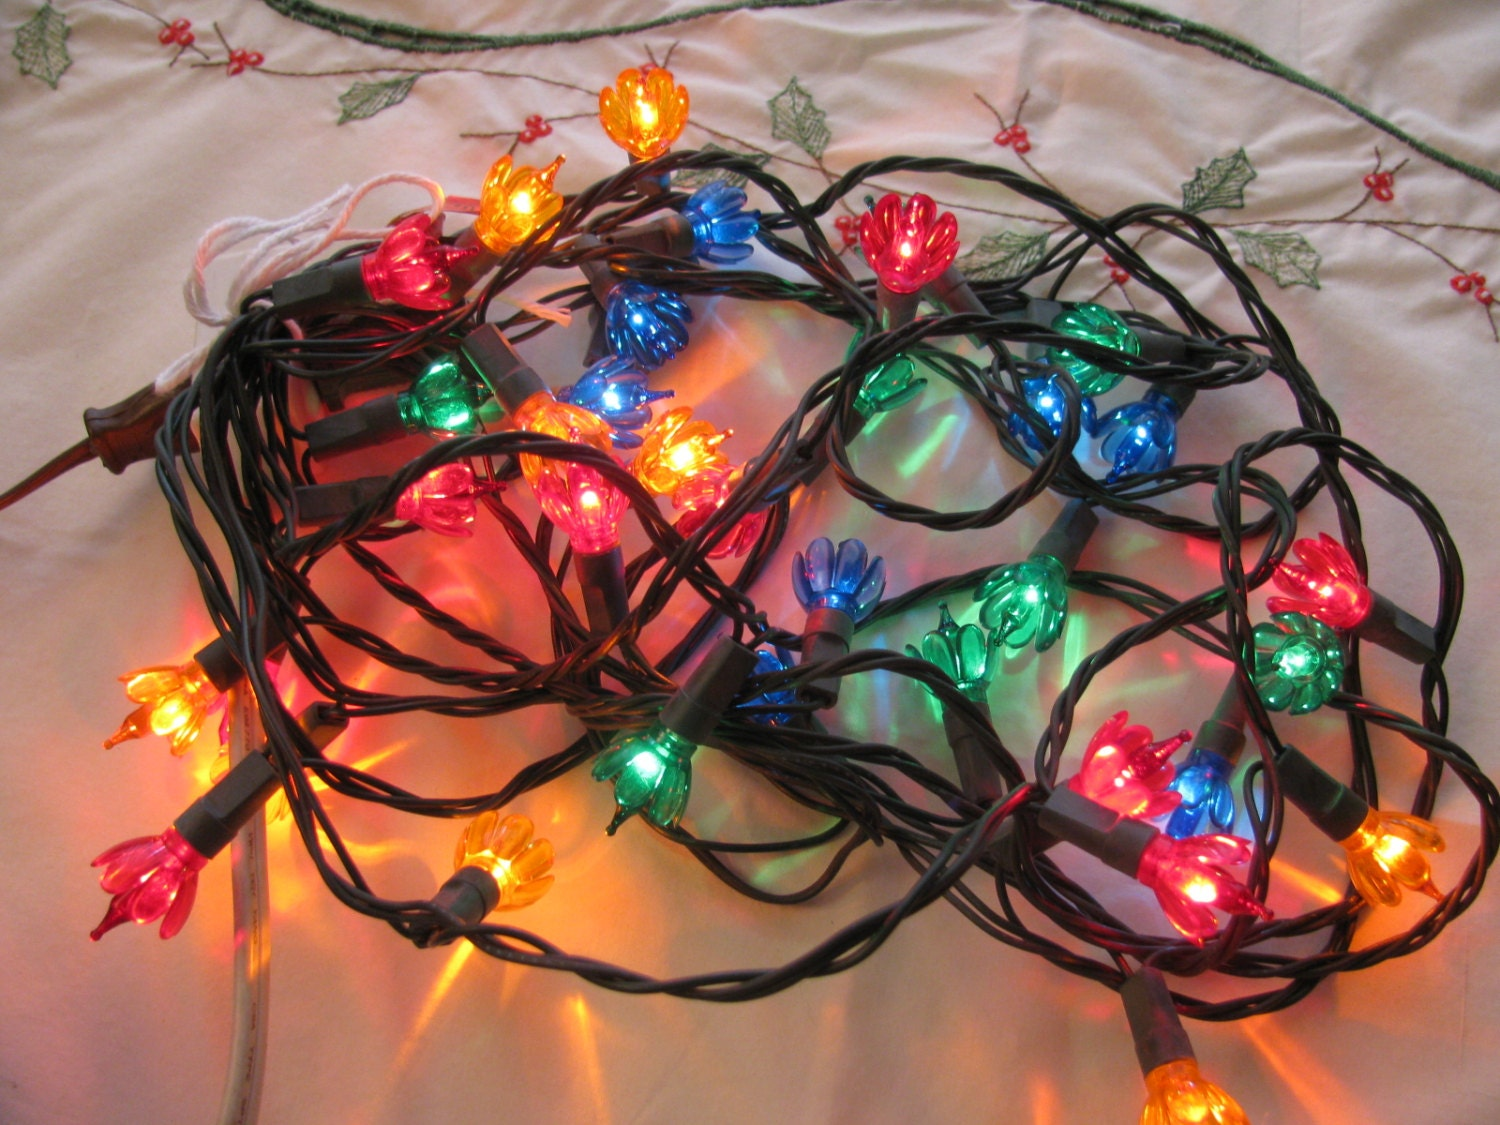 Vintage String Lights Etsy : Vintage 1960s Flower Mini Christmas Lights 35 Bulb Set String